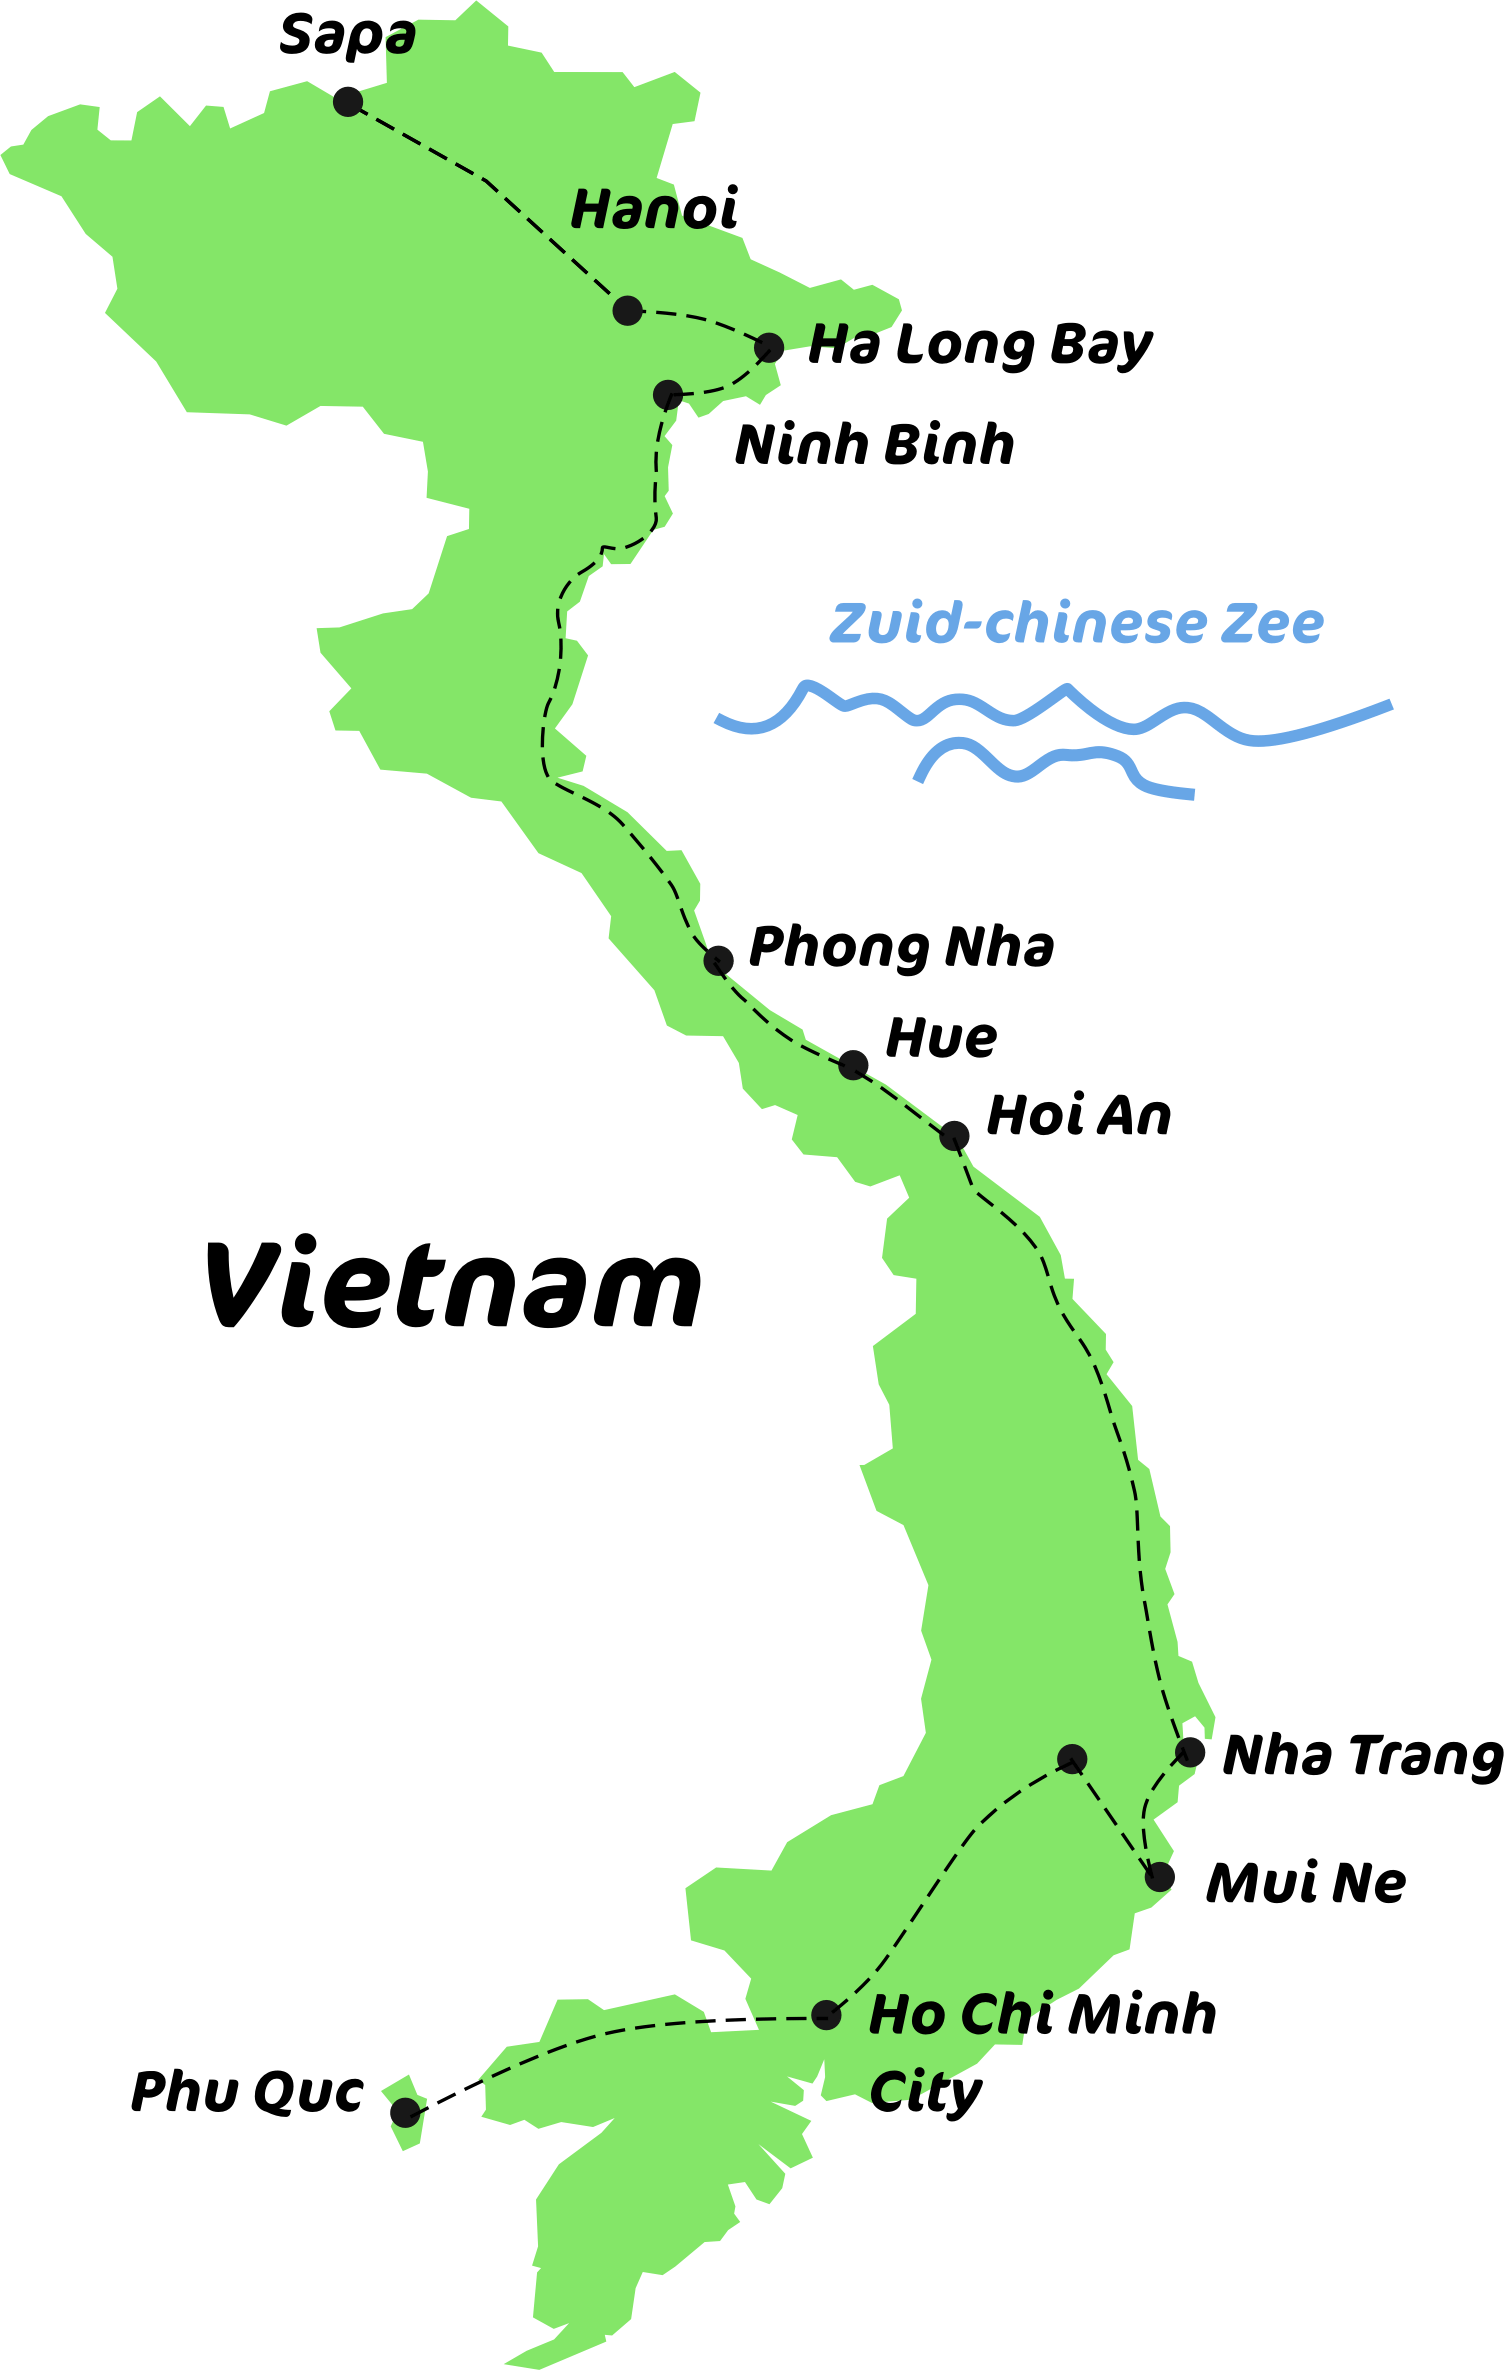 kaart van de backpack route Vietnam